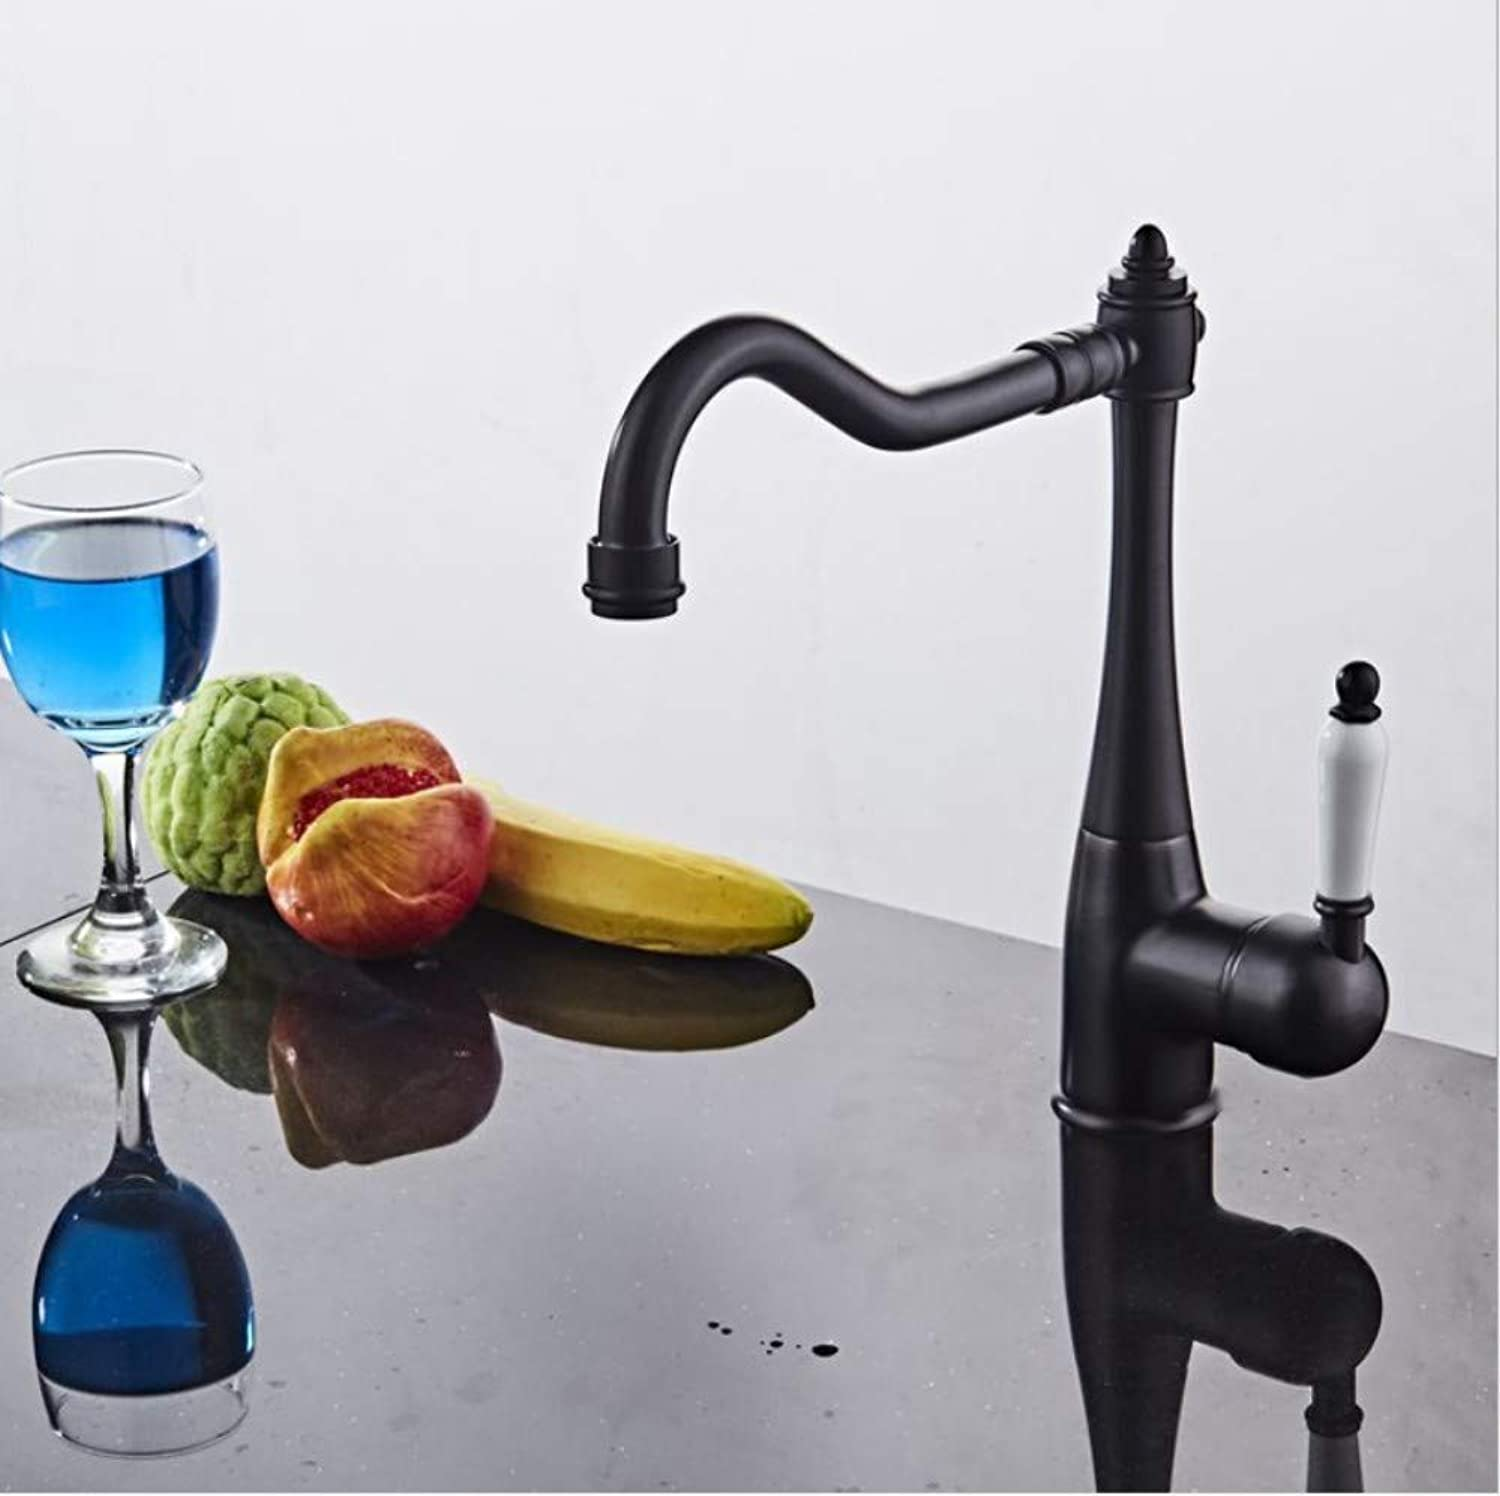 Bathroom Sink Basin Lever Mixer Tap Copper Brushed European Antique Kitchen Retro Black Orb Faucet Dish Hot and Cold Faucet